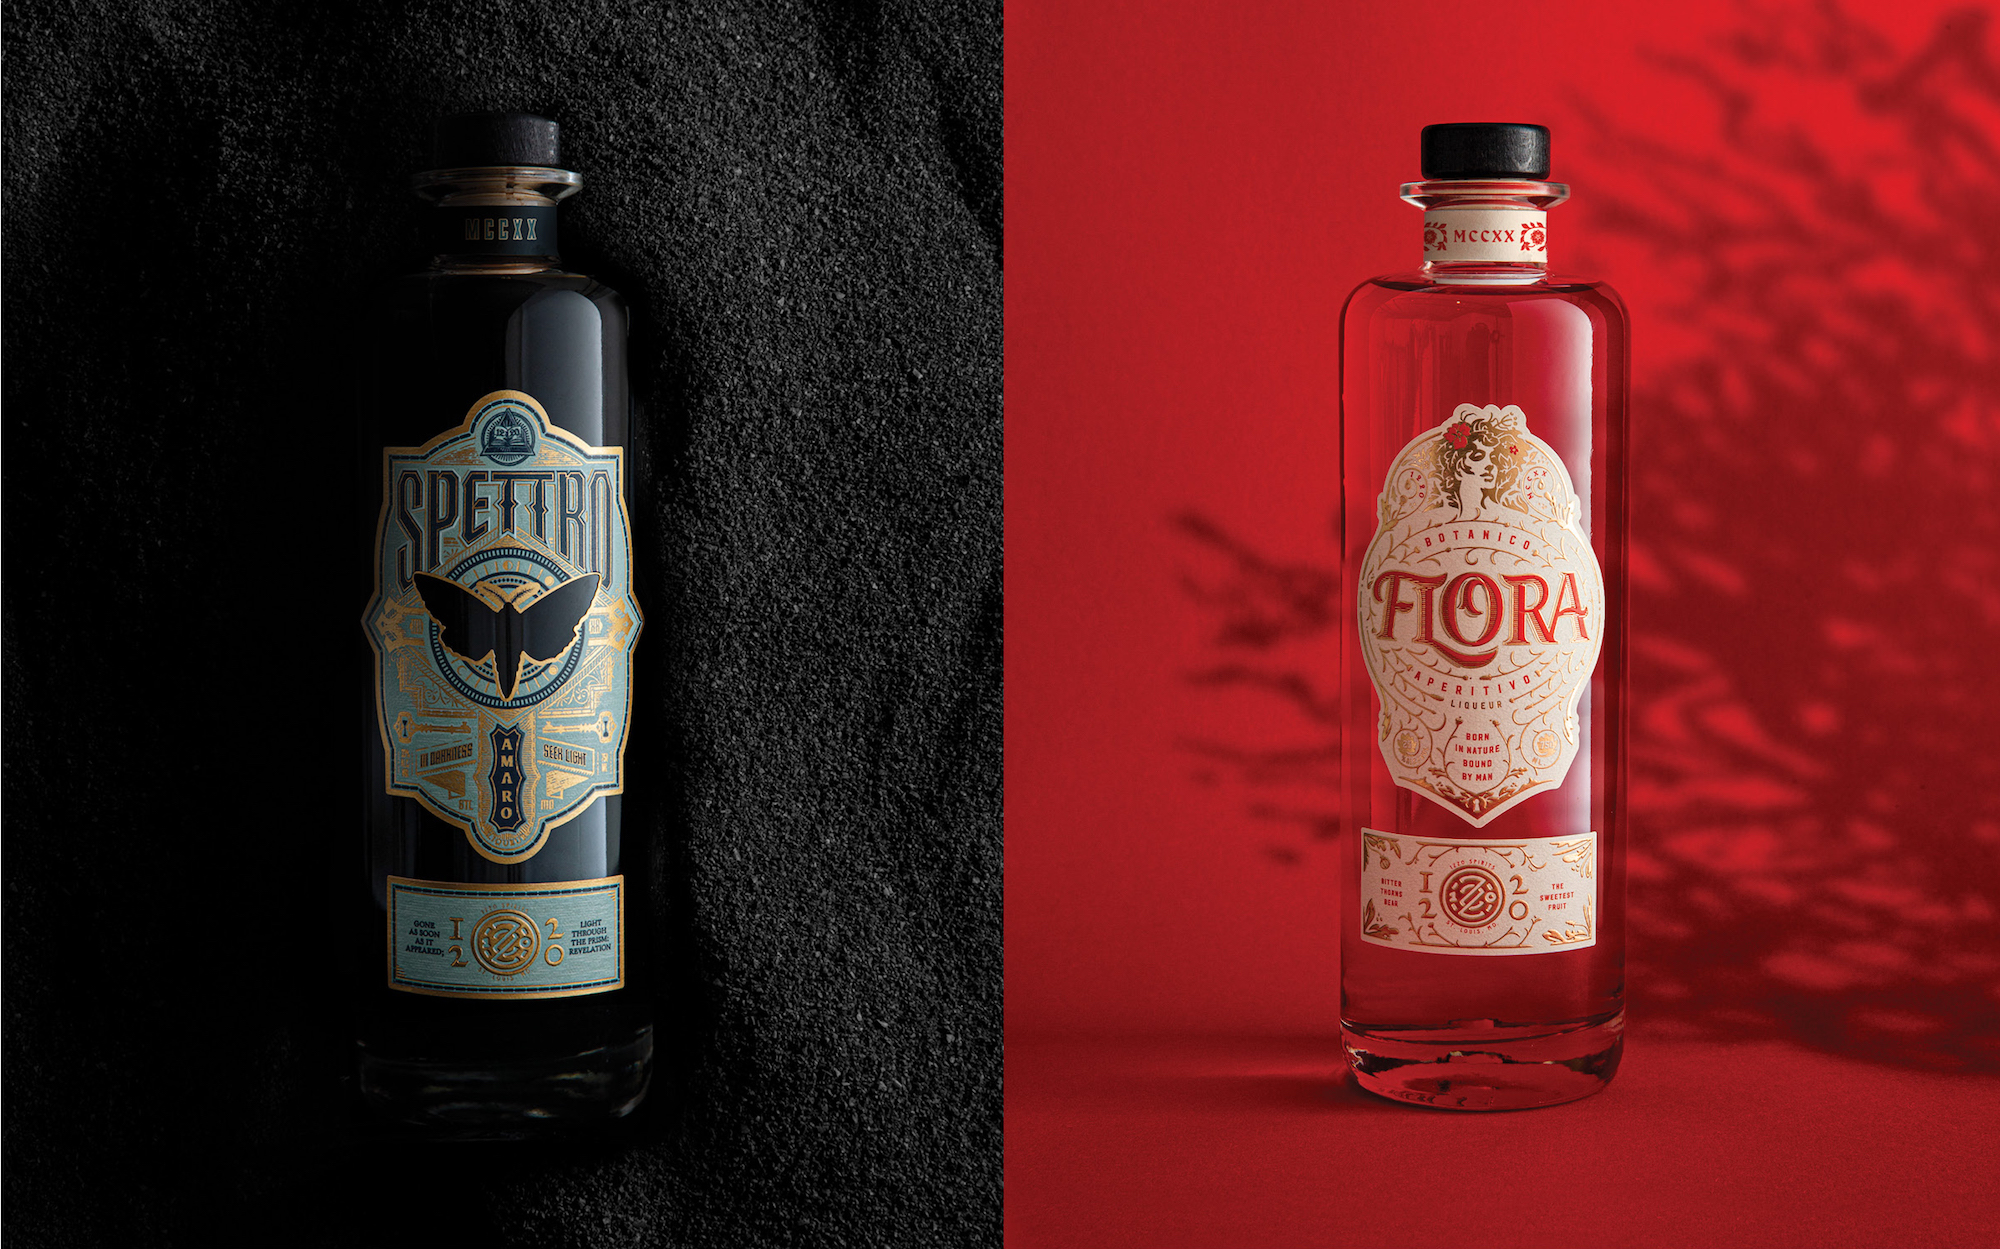 Photos of Spettro and Flora Bottles